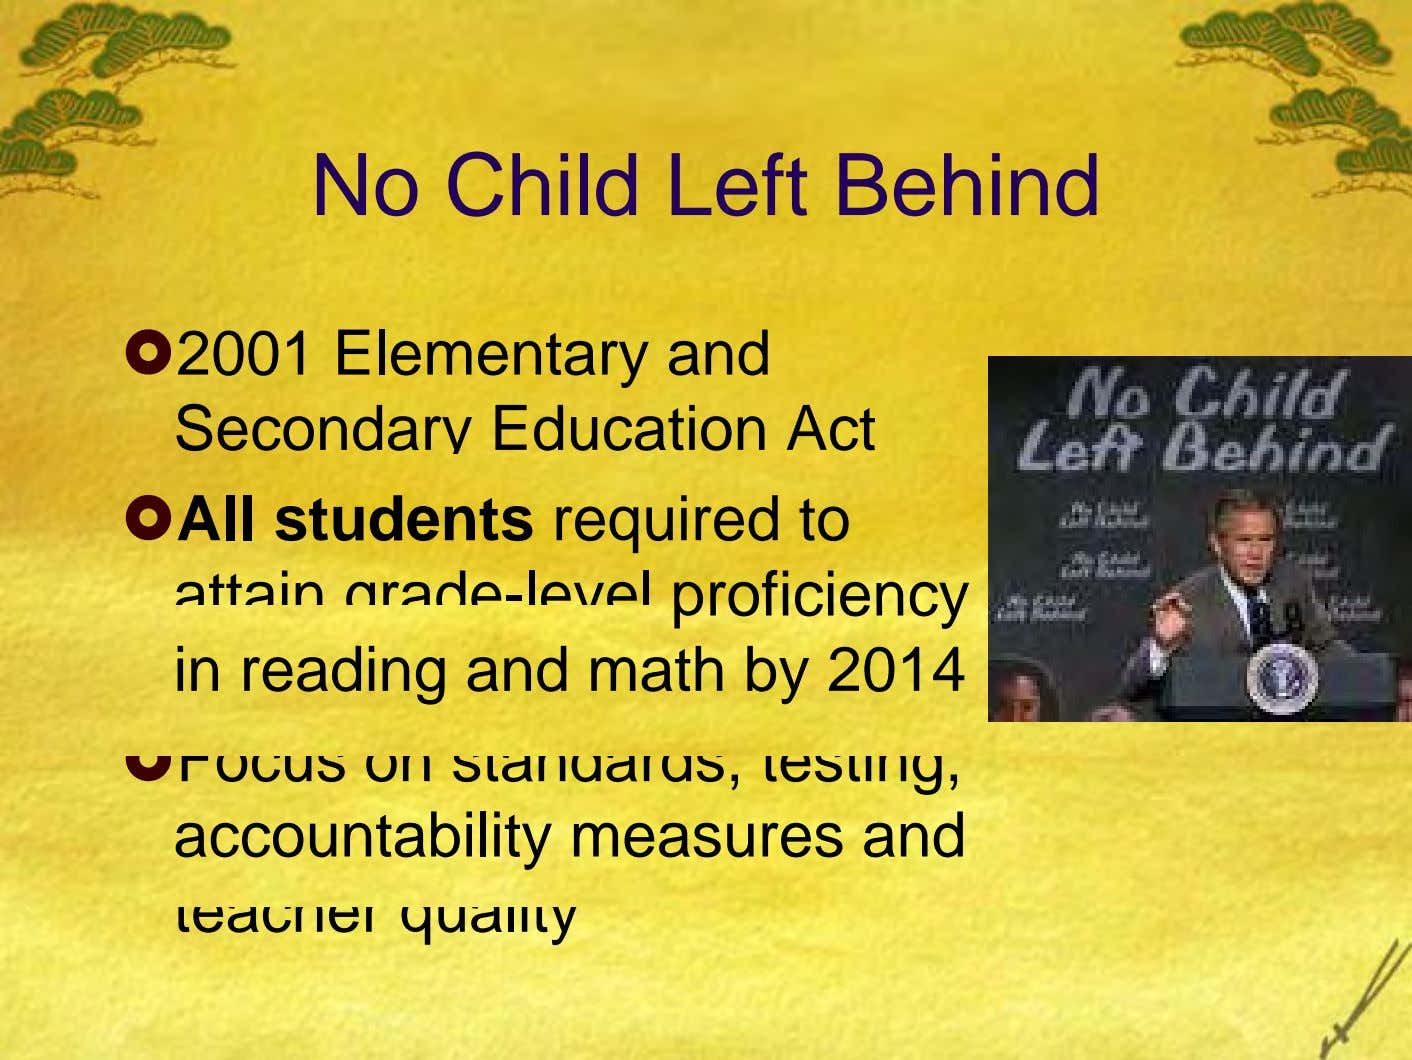 No Child Left Behind 2001 Elementary and Secondary Education Act All students required to attain rade-level